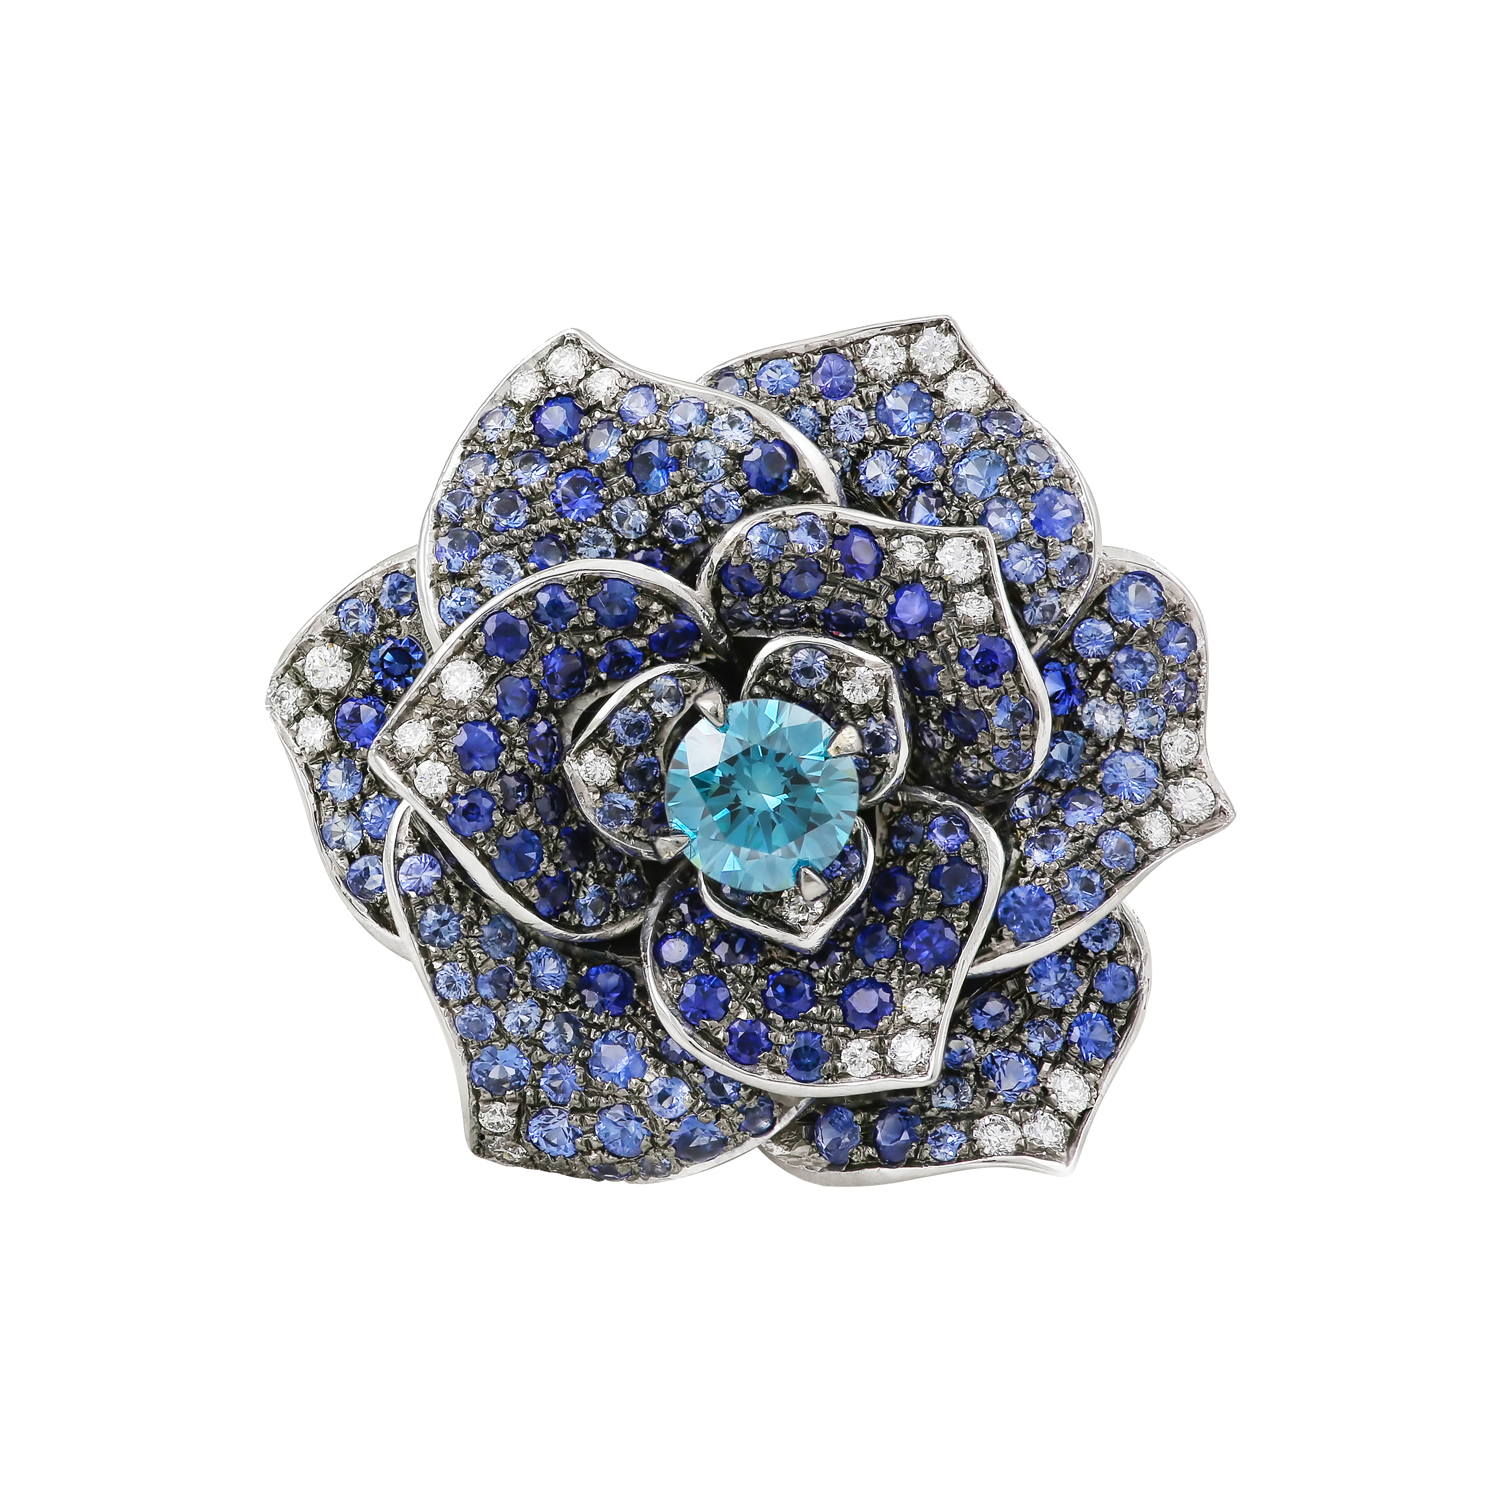 Bespoke Jewellery Singapore Exotic Gems & Jewellery Pte Ltd Blue Diamond Sapphire Ring